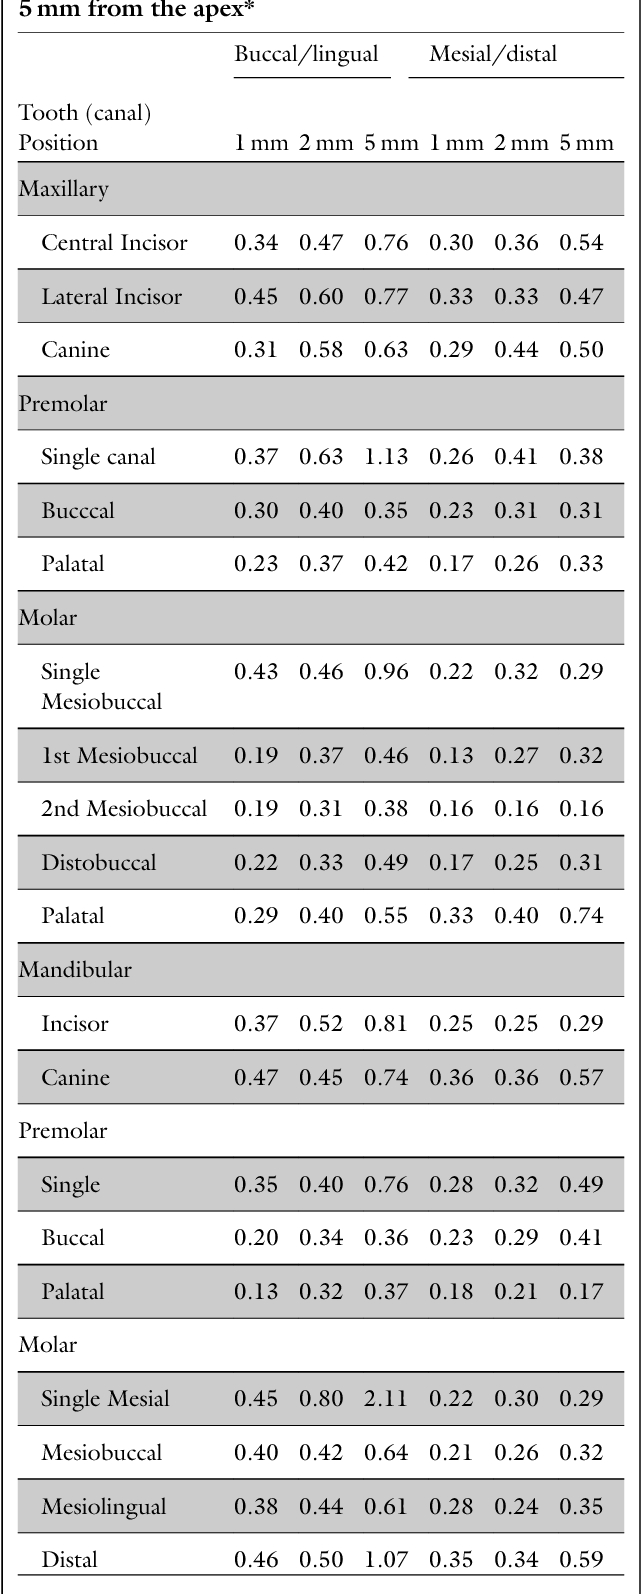 Root canal morphology and its relationship to endodontic - Semantic